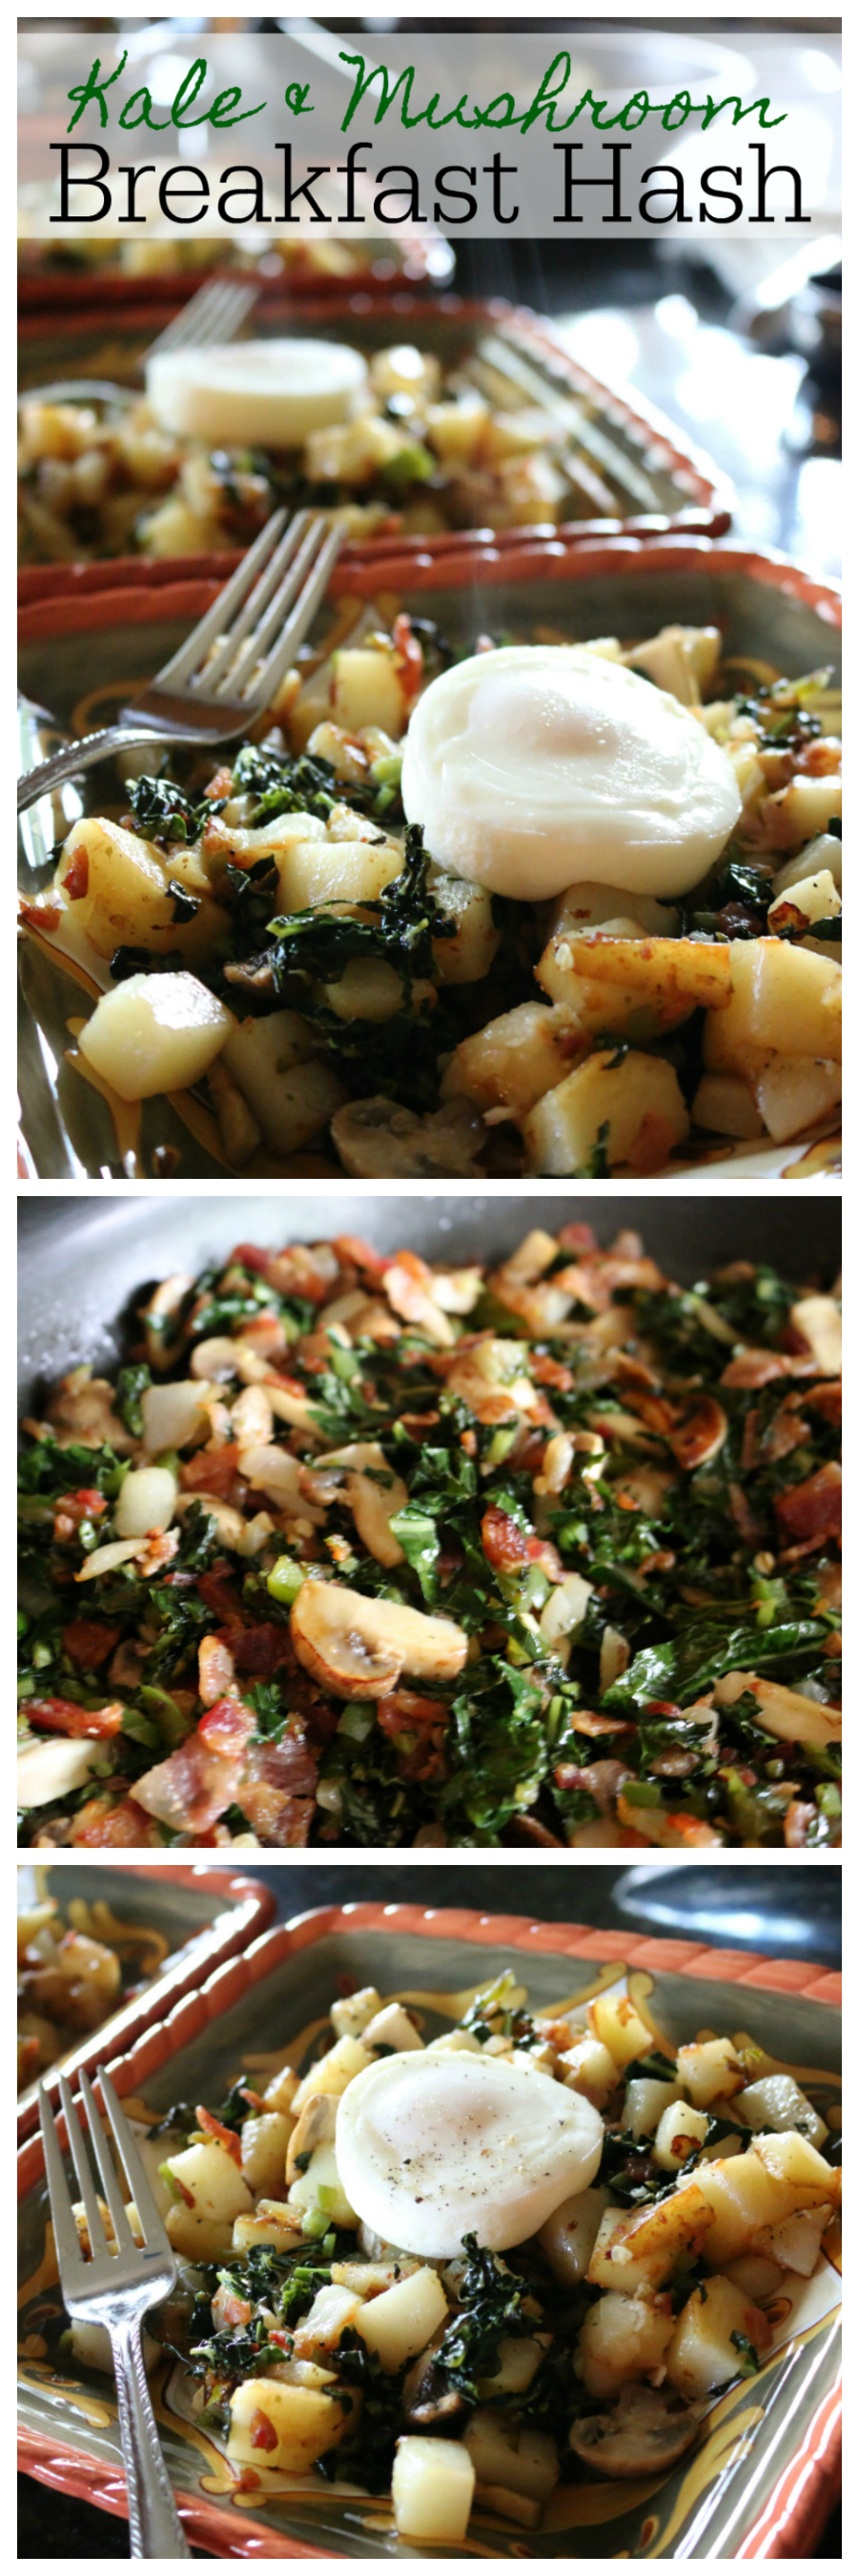 Kale & Mushroom Breakfast Hash Recipe - Great for breakfast or dinner. CeceliasGoodStuff.com Good Food for Good People